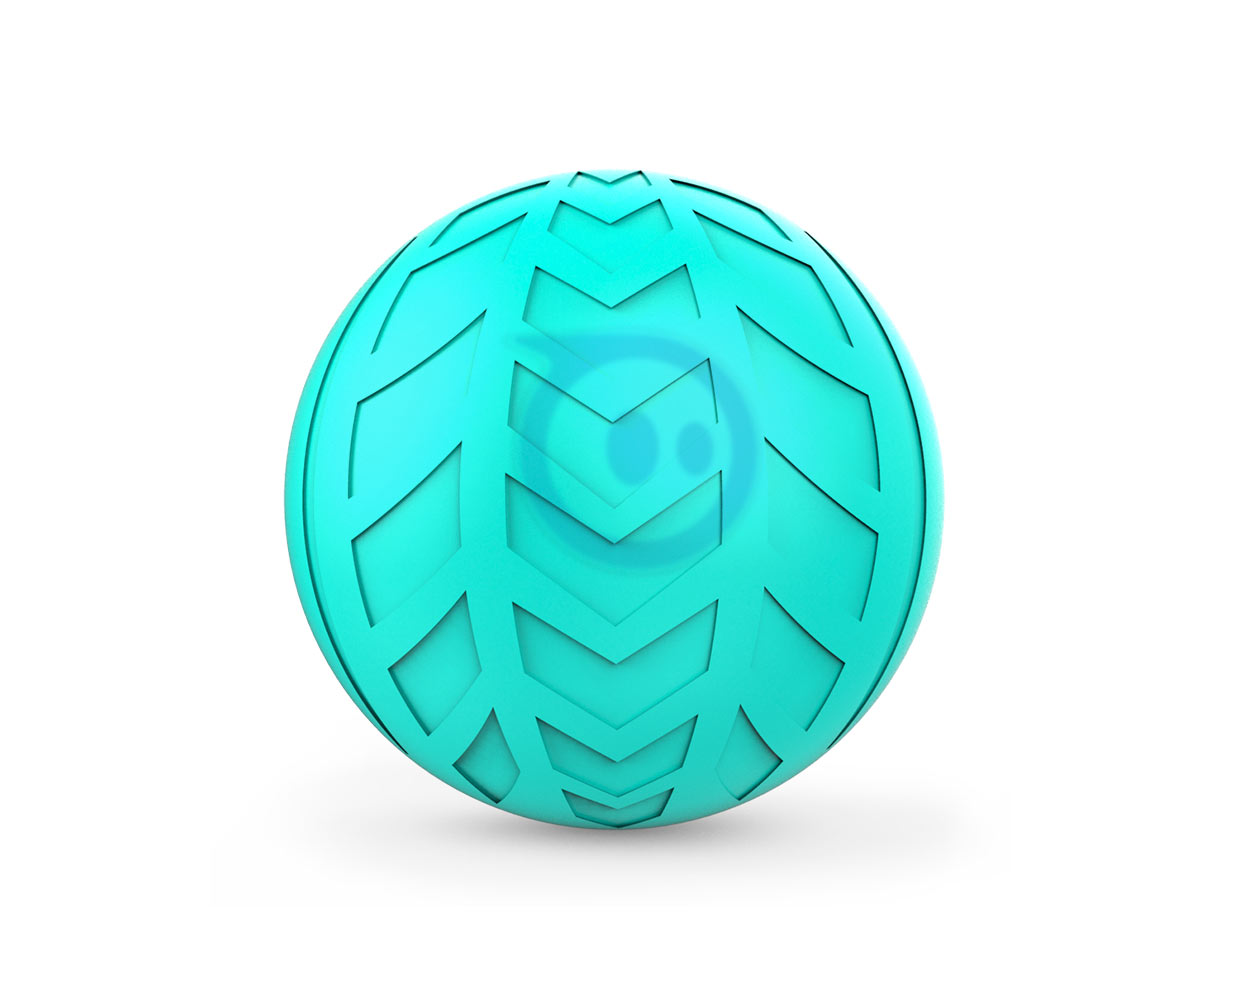 Аксессуары: Sphero Turbo Cover Teal, фотография №1